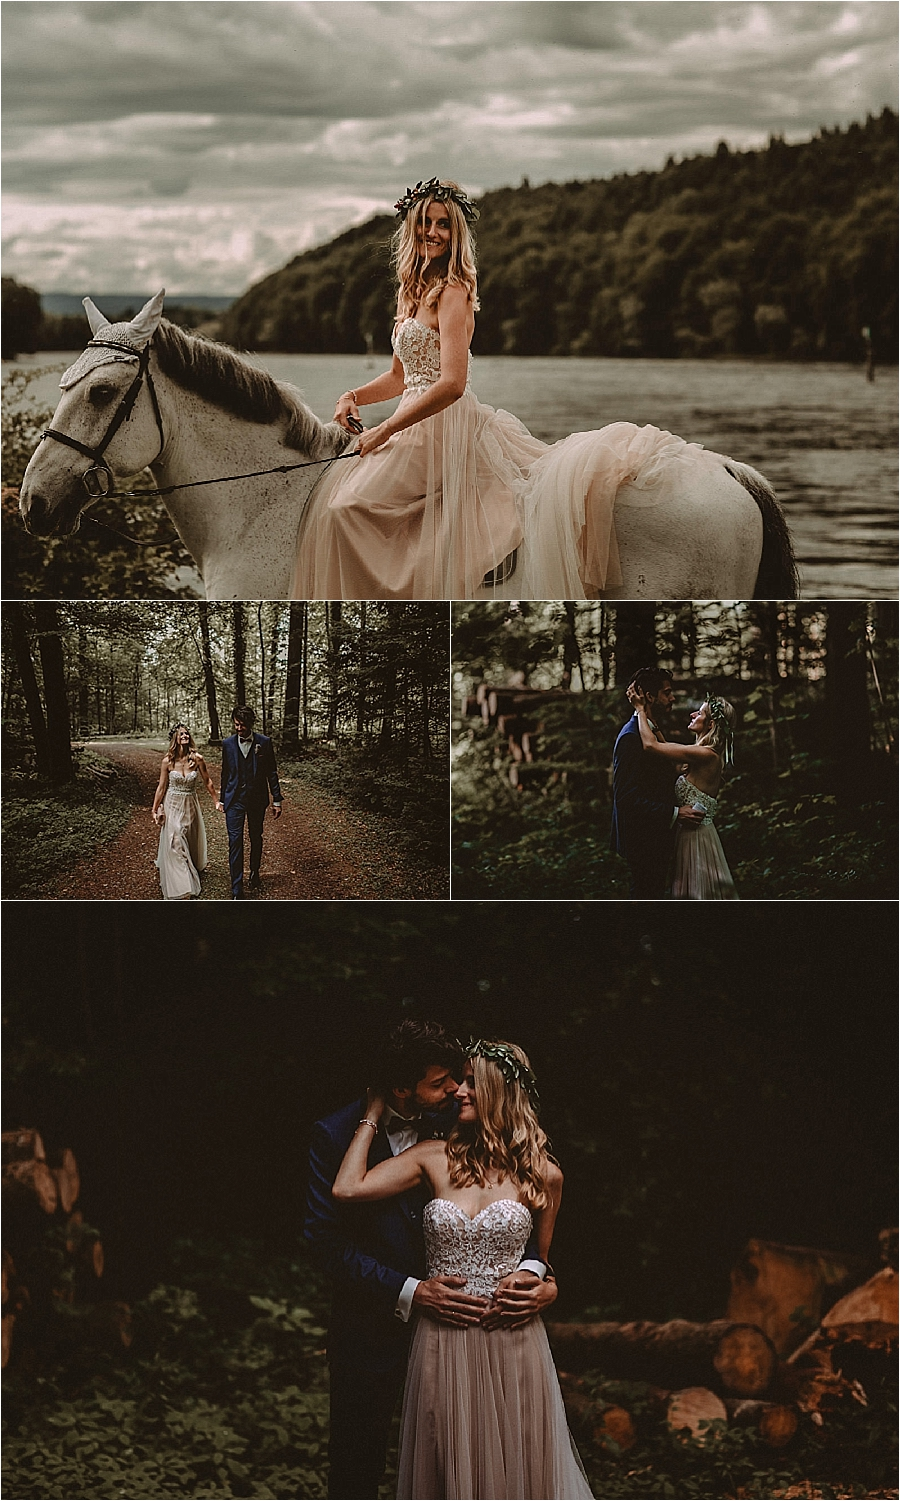 The bride and groom walk through the forest in Switzerland by Bring Me Somewhere Nice